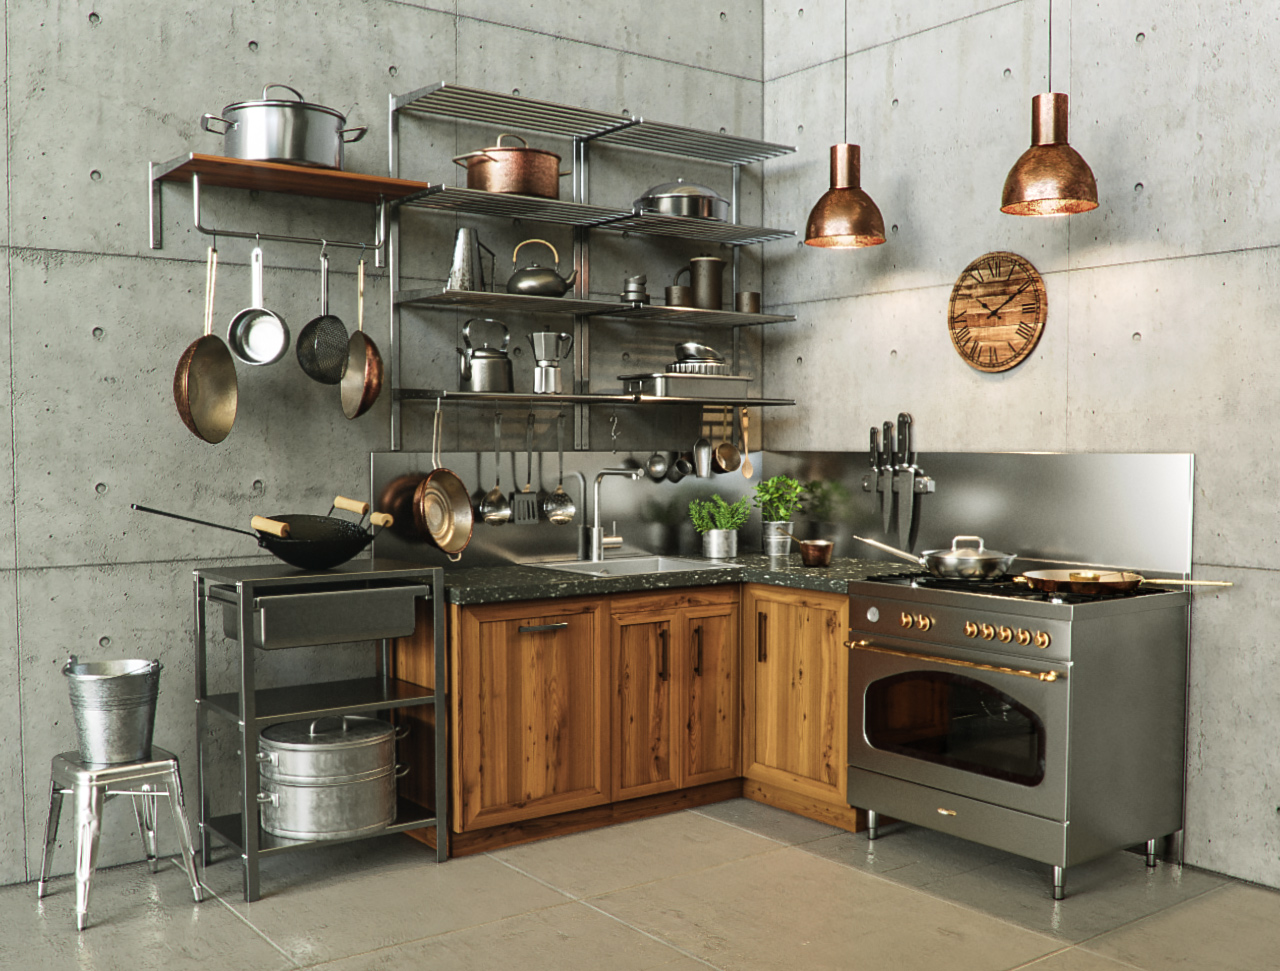 Corona_shaders_pack_for_Cinema_4D_Metal_kitchen